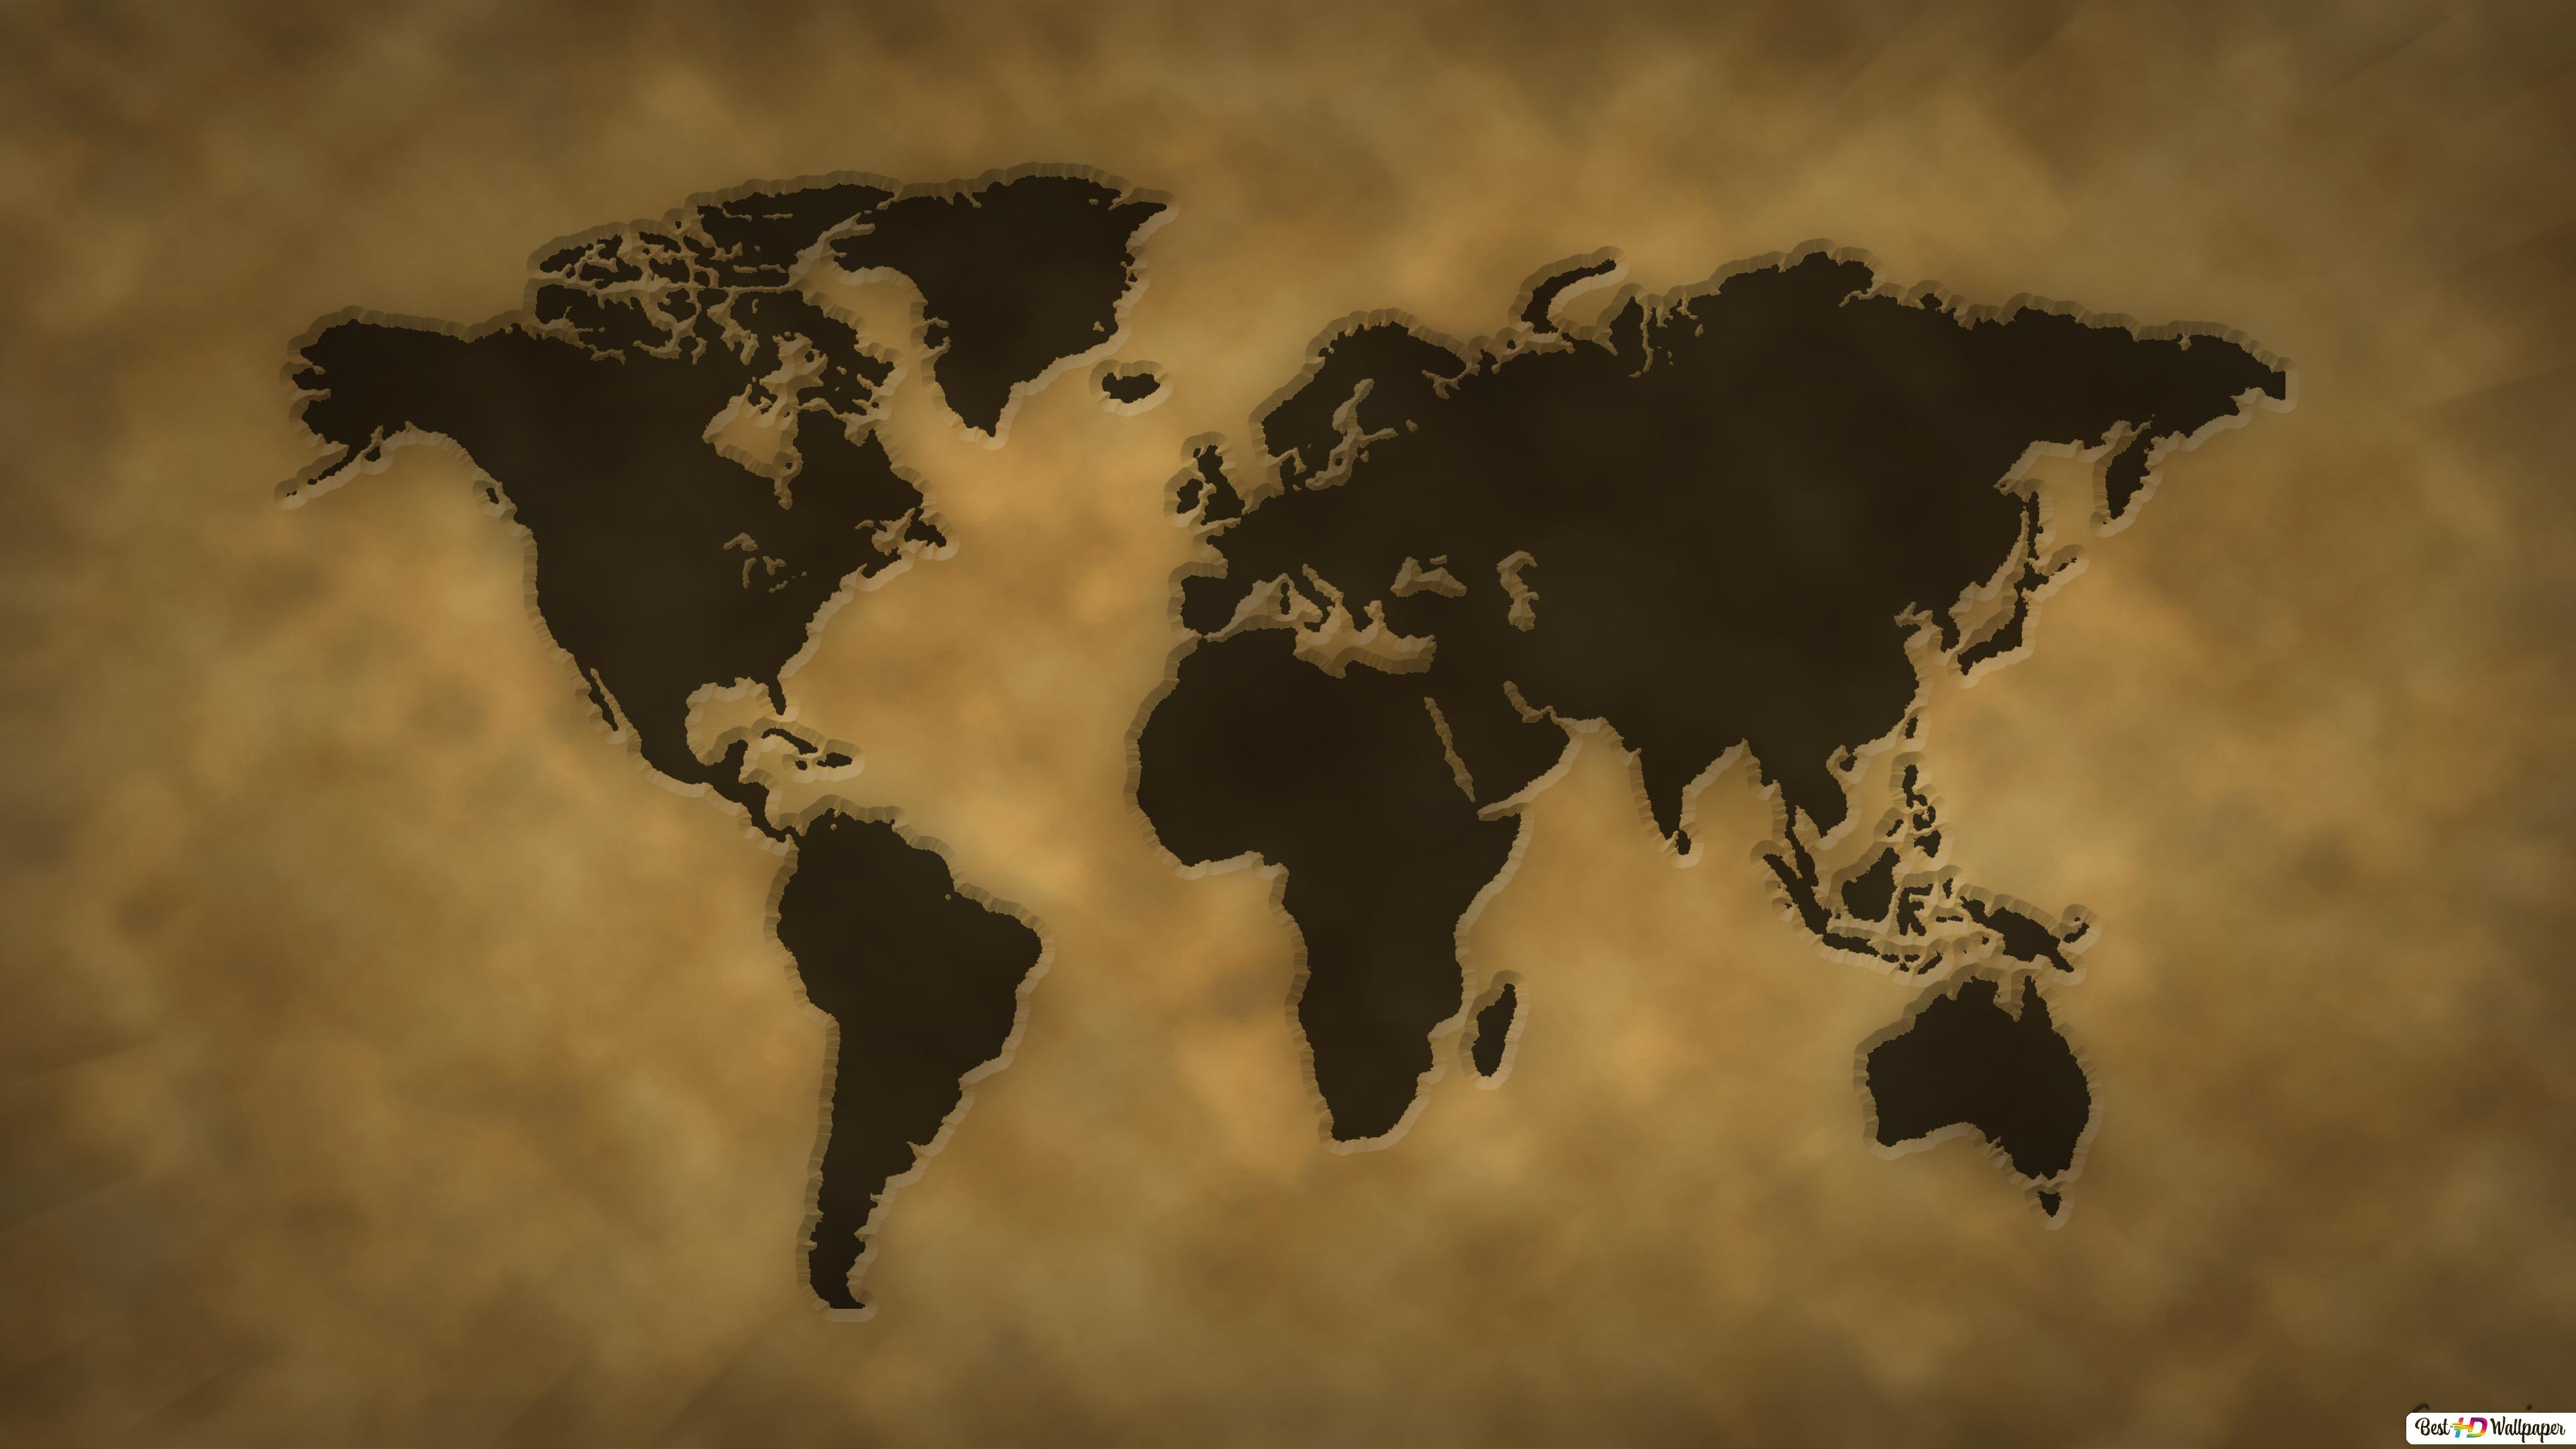 Vintage World Map Hd Wallpaper Download